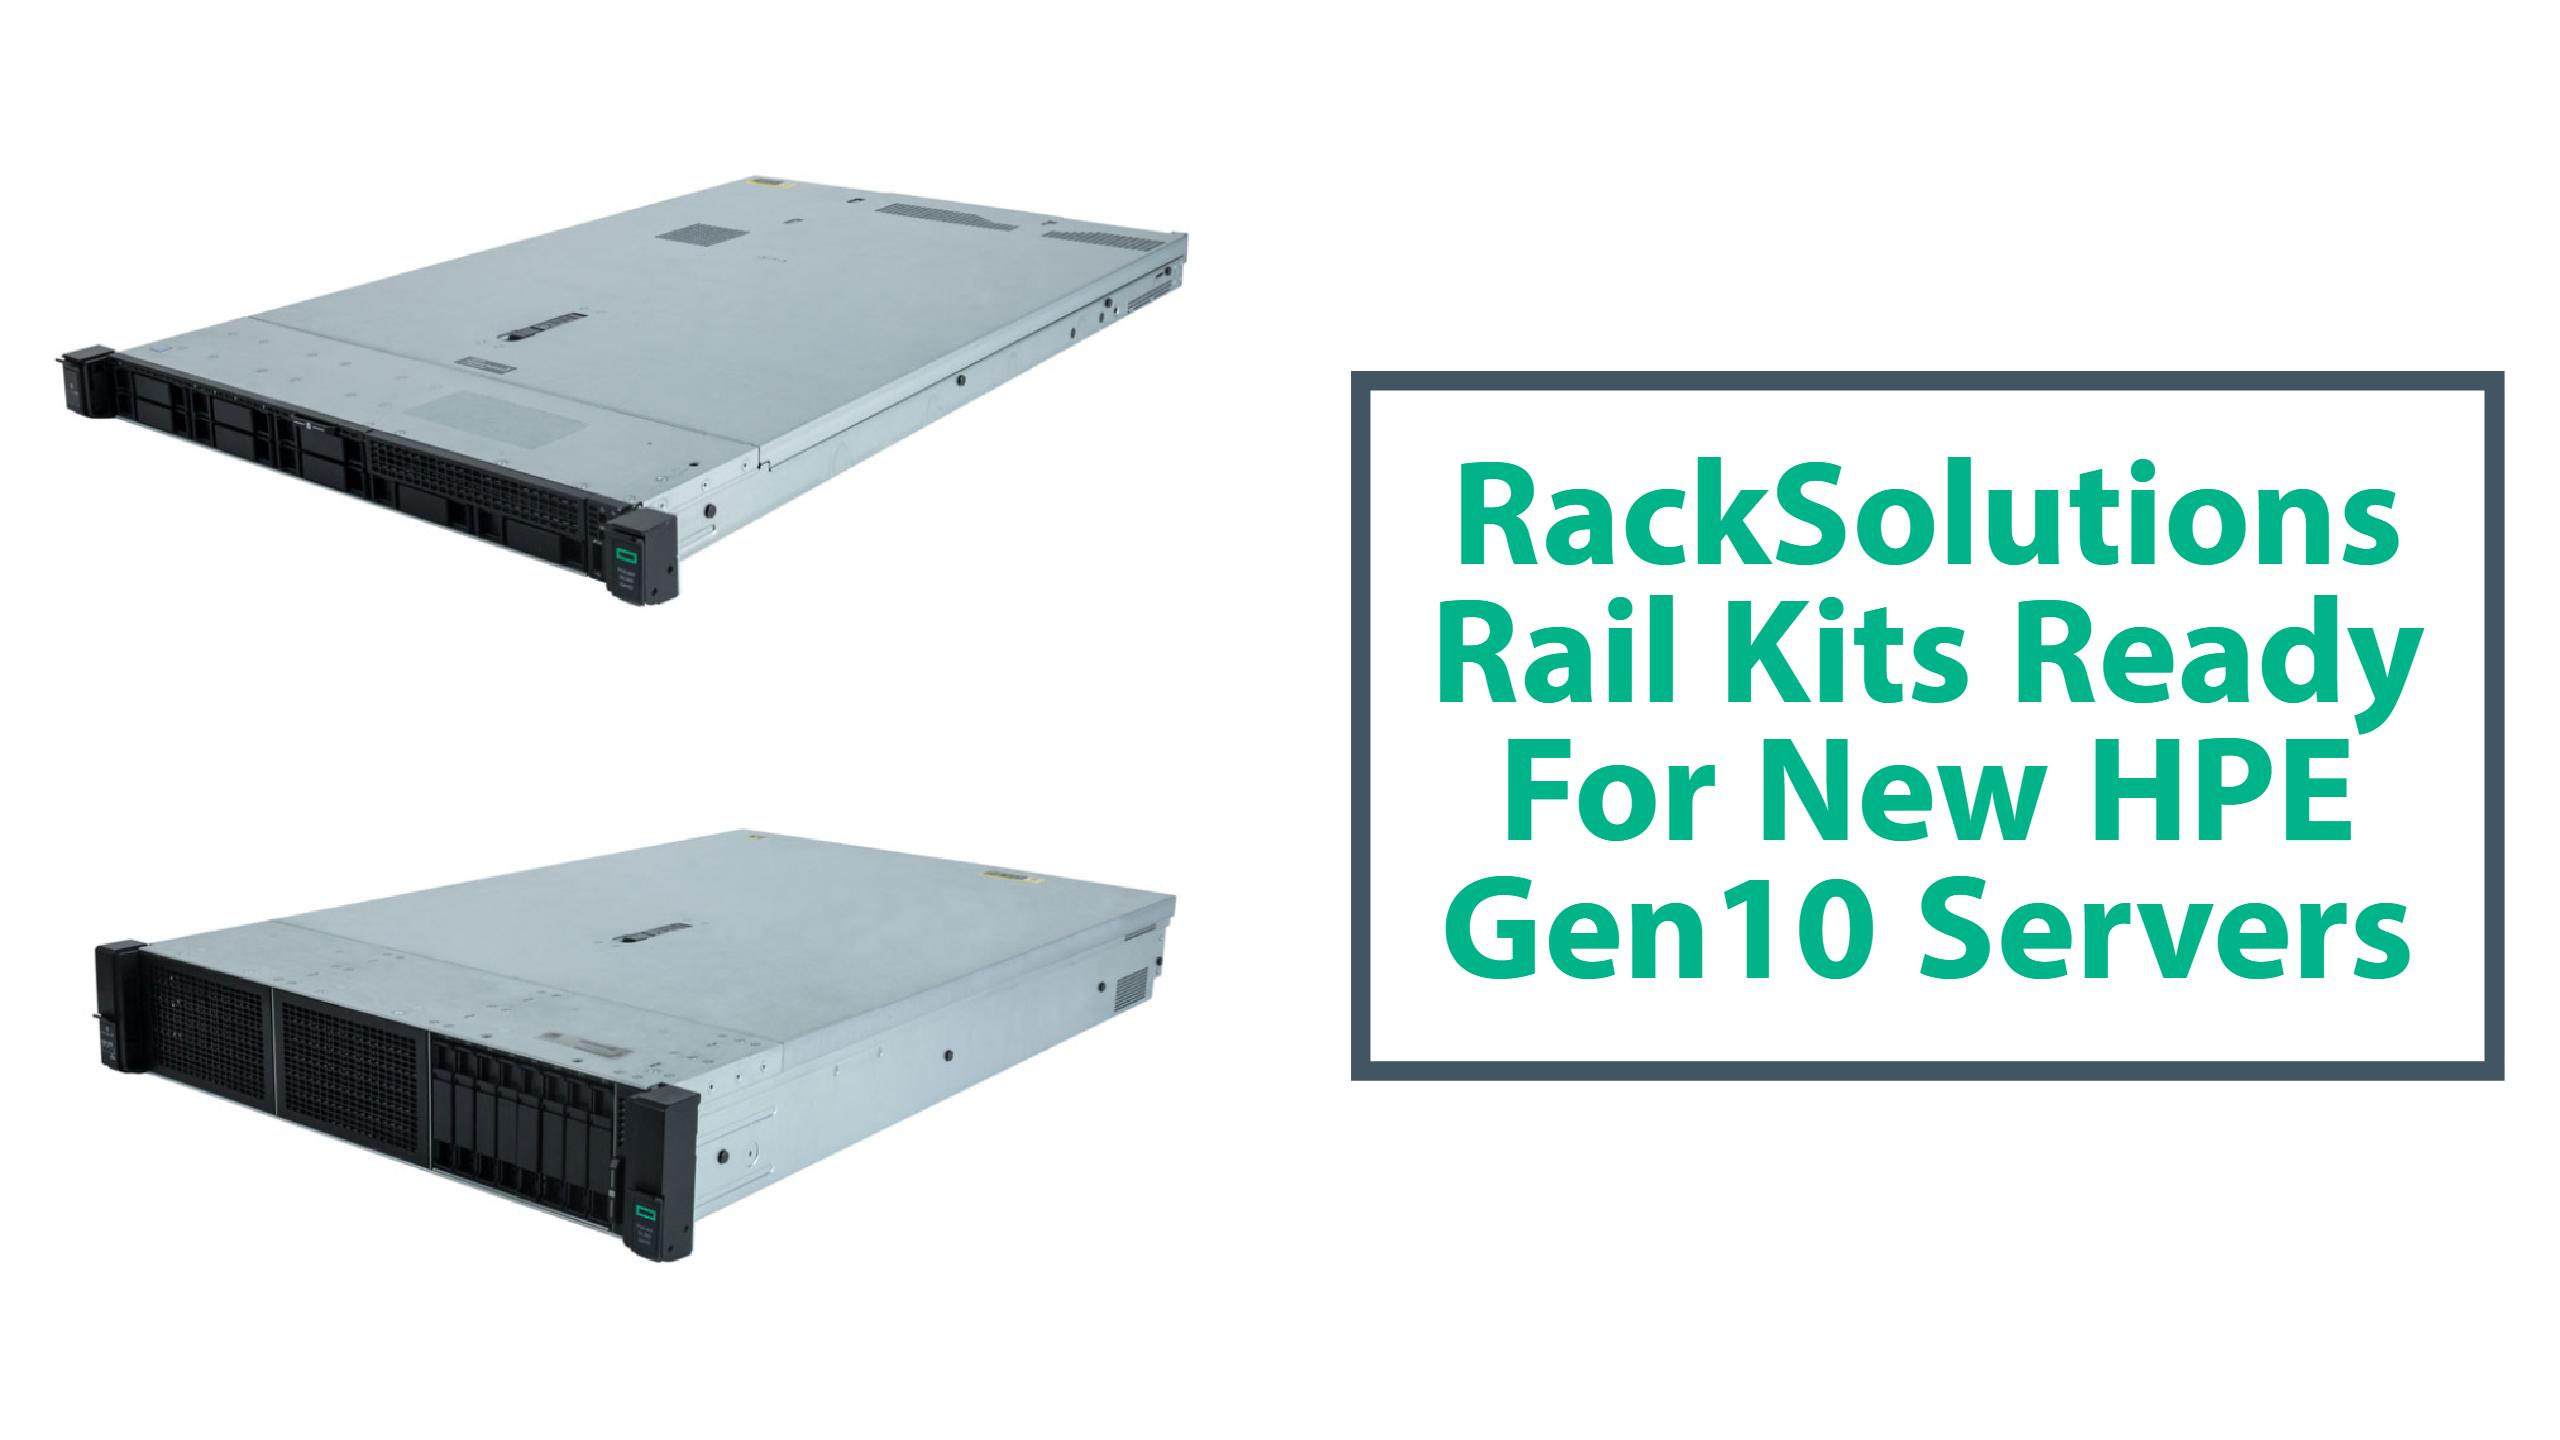 RackSolutions Rail Kits Ready for HPE Gen10